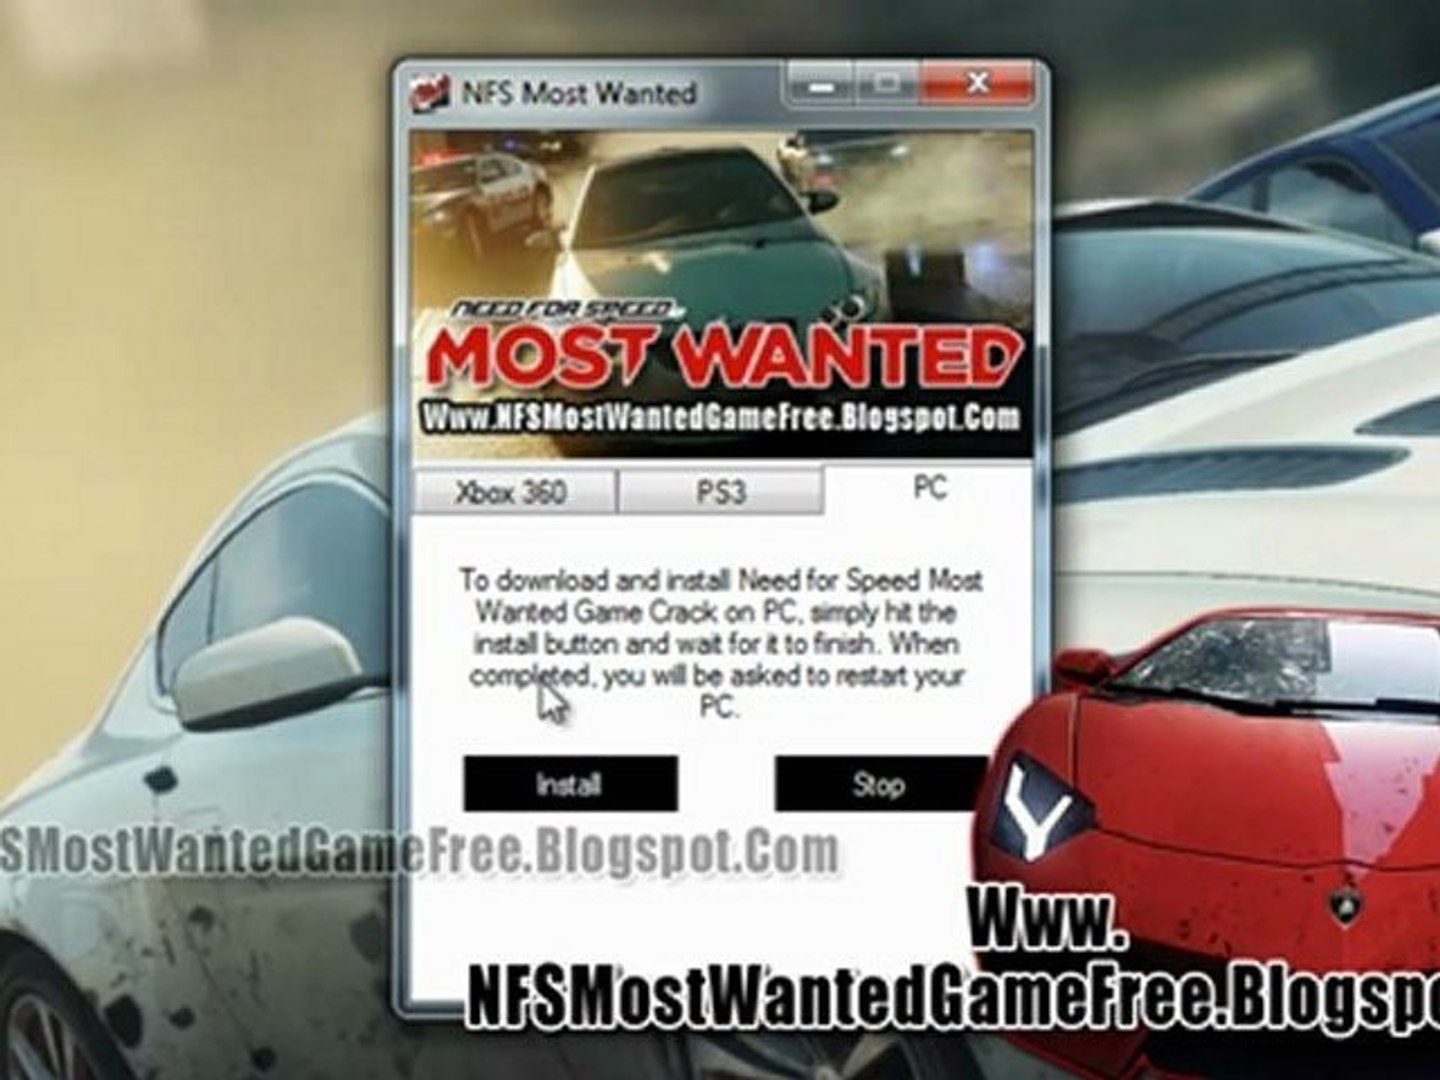 How To Install Need For Speed Most Wanted Game Free On Xbox 360